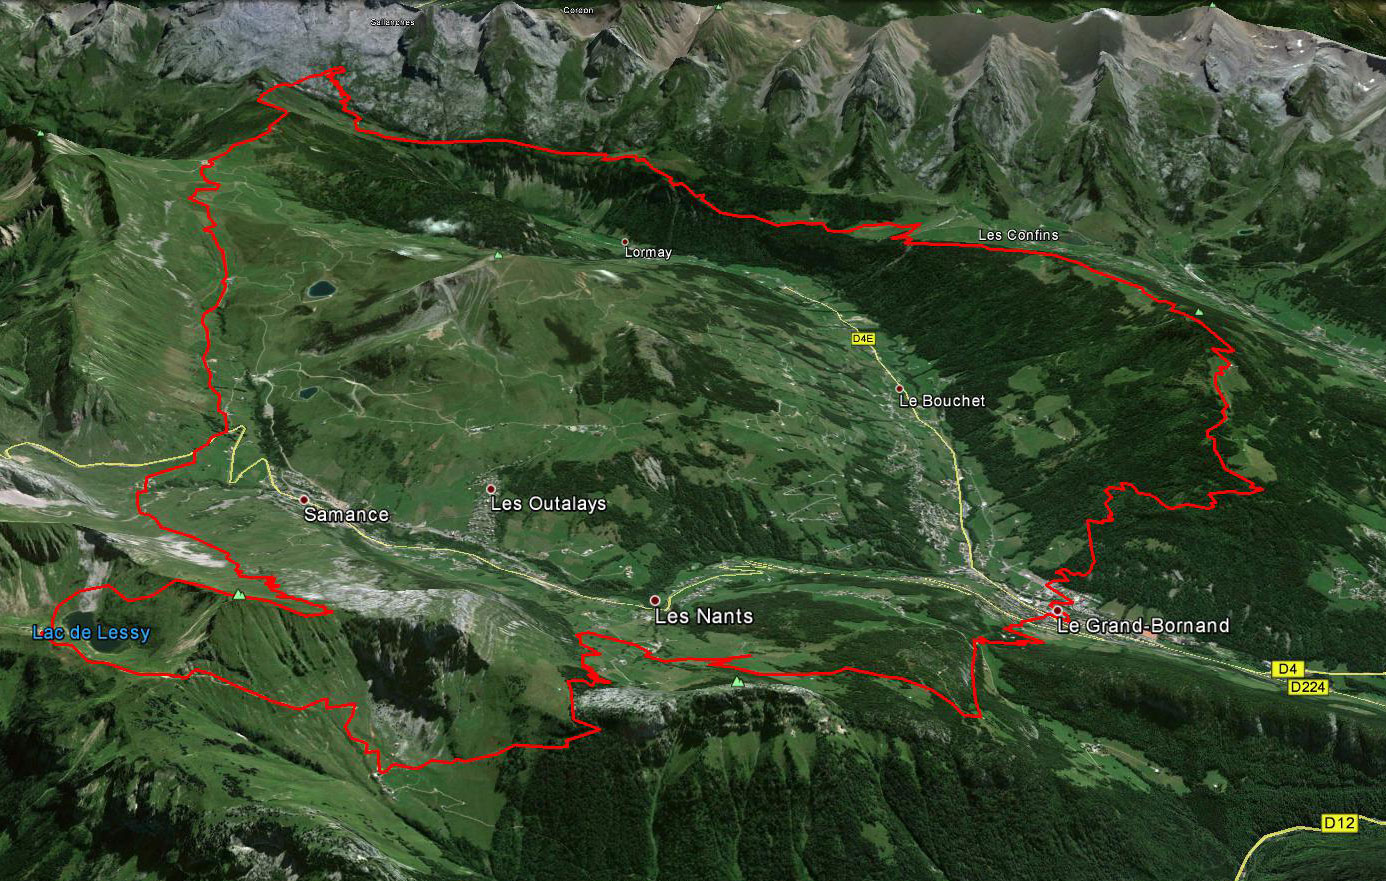 Trail Grand Bornand grande distance